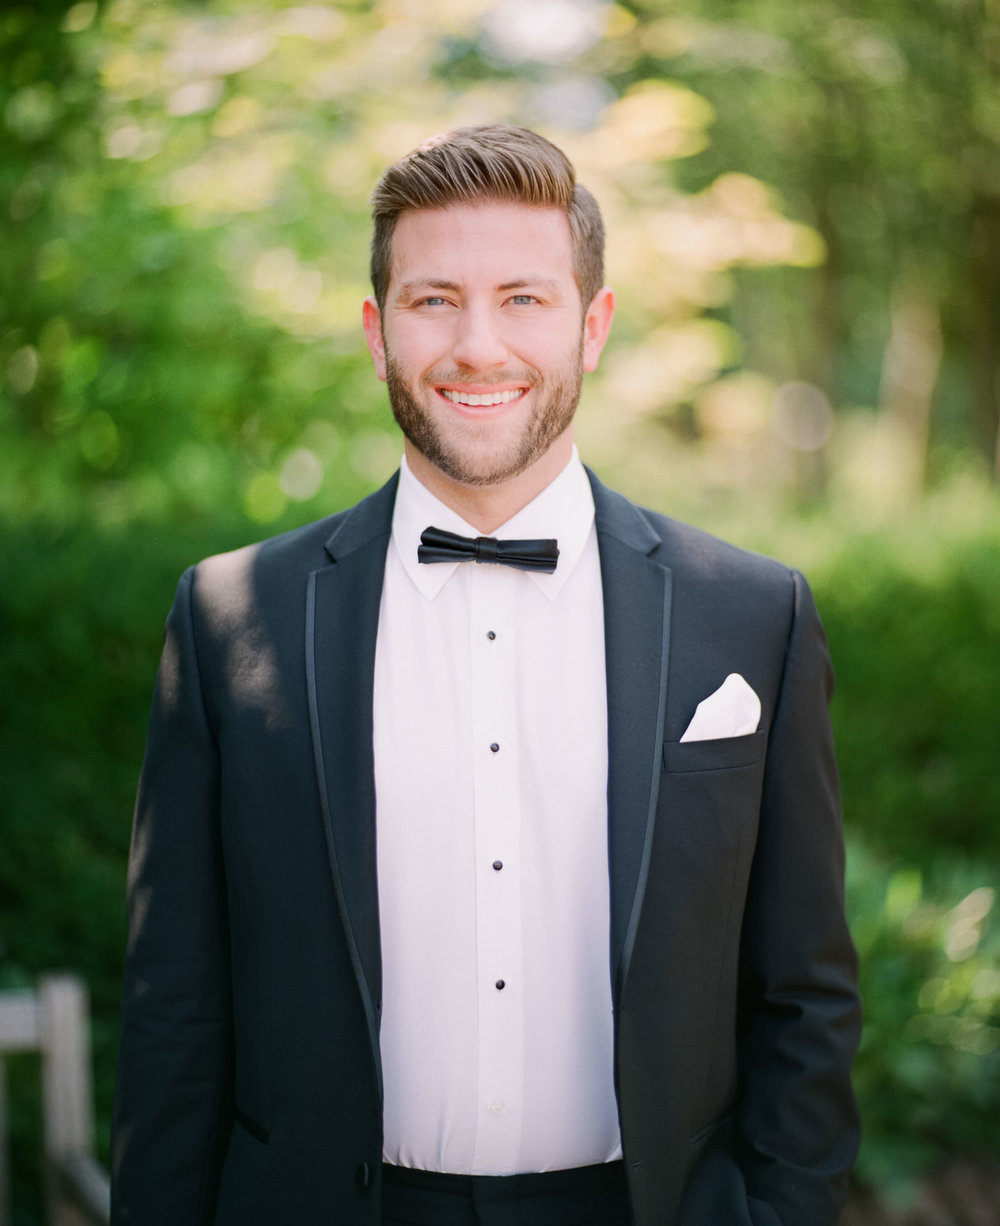 Image of groom smiling taking using Pentax 67 with Schneider Cinelux Ultra MC 120mm f/2